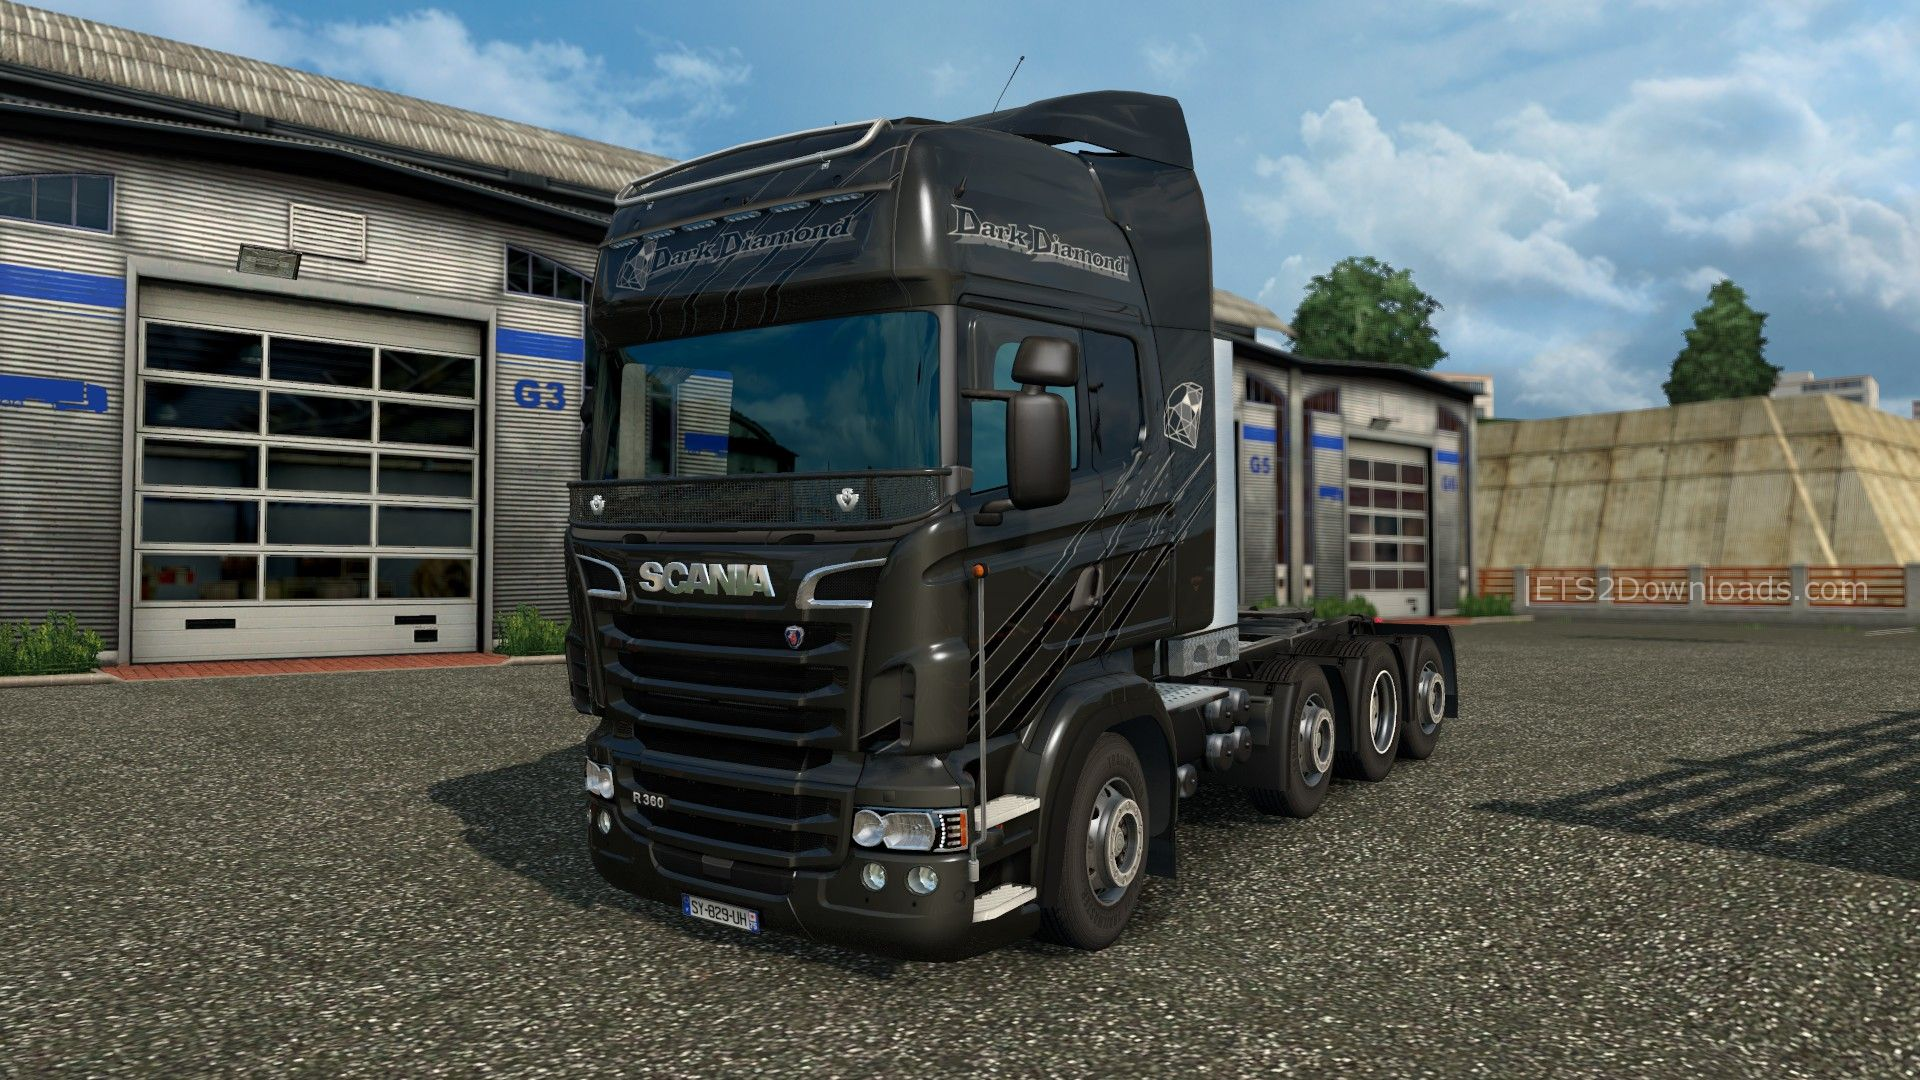 dark-diamond-metallic-skin-for-scania-rjl